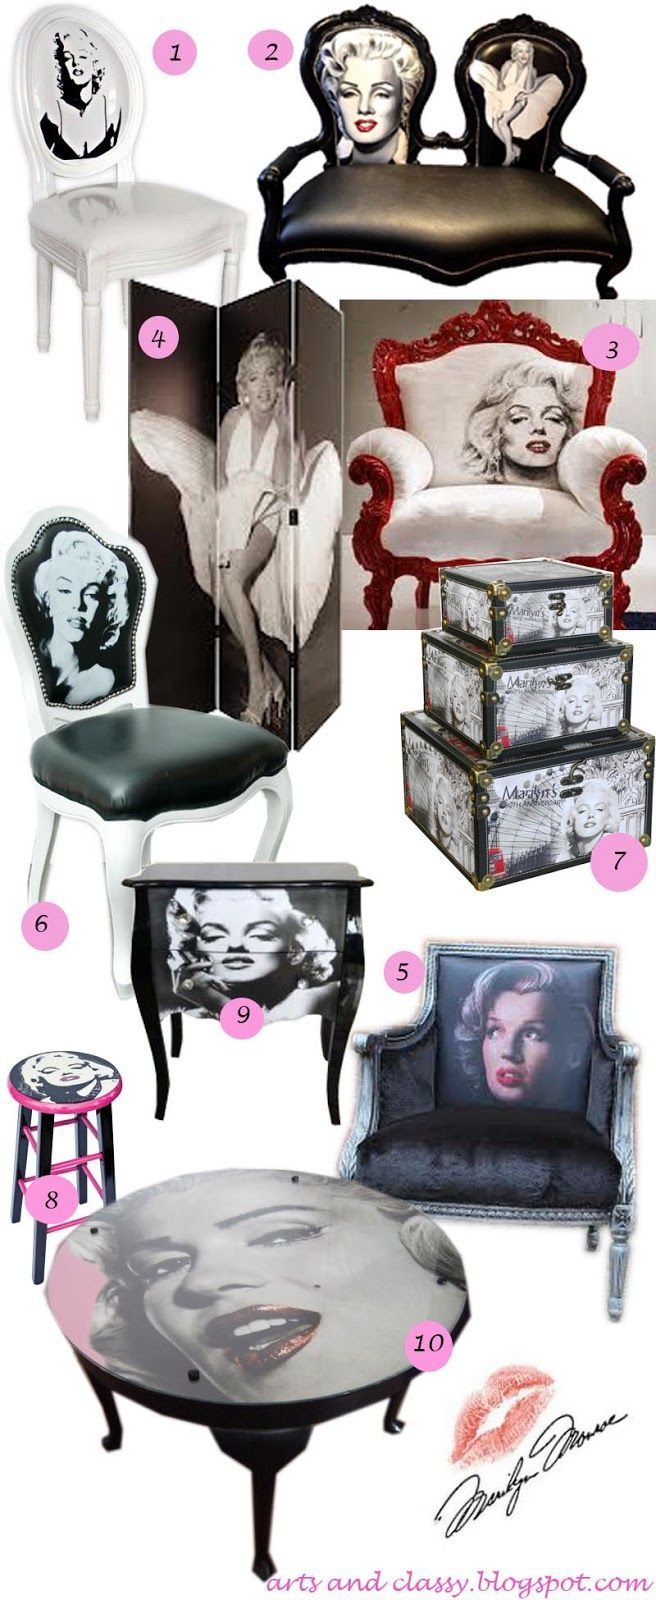 Marilyn monroe french chair - Diy Home Decor Ideas On A Budget Marilyn Monroe Inspired Furniture And Decor In